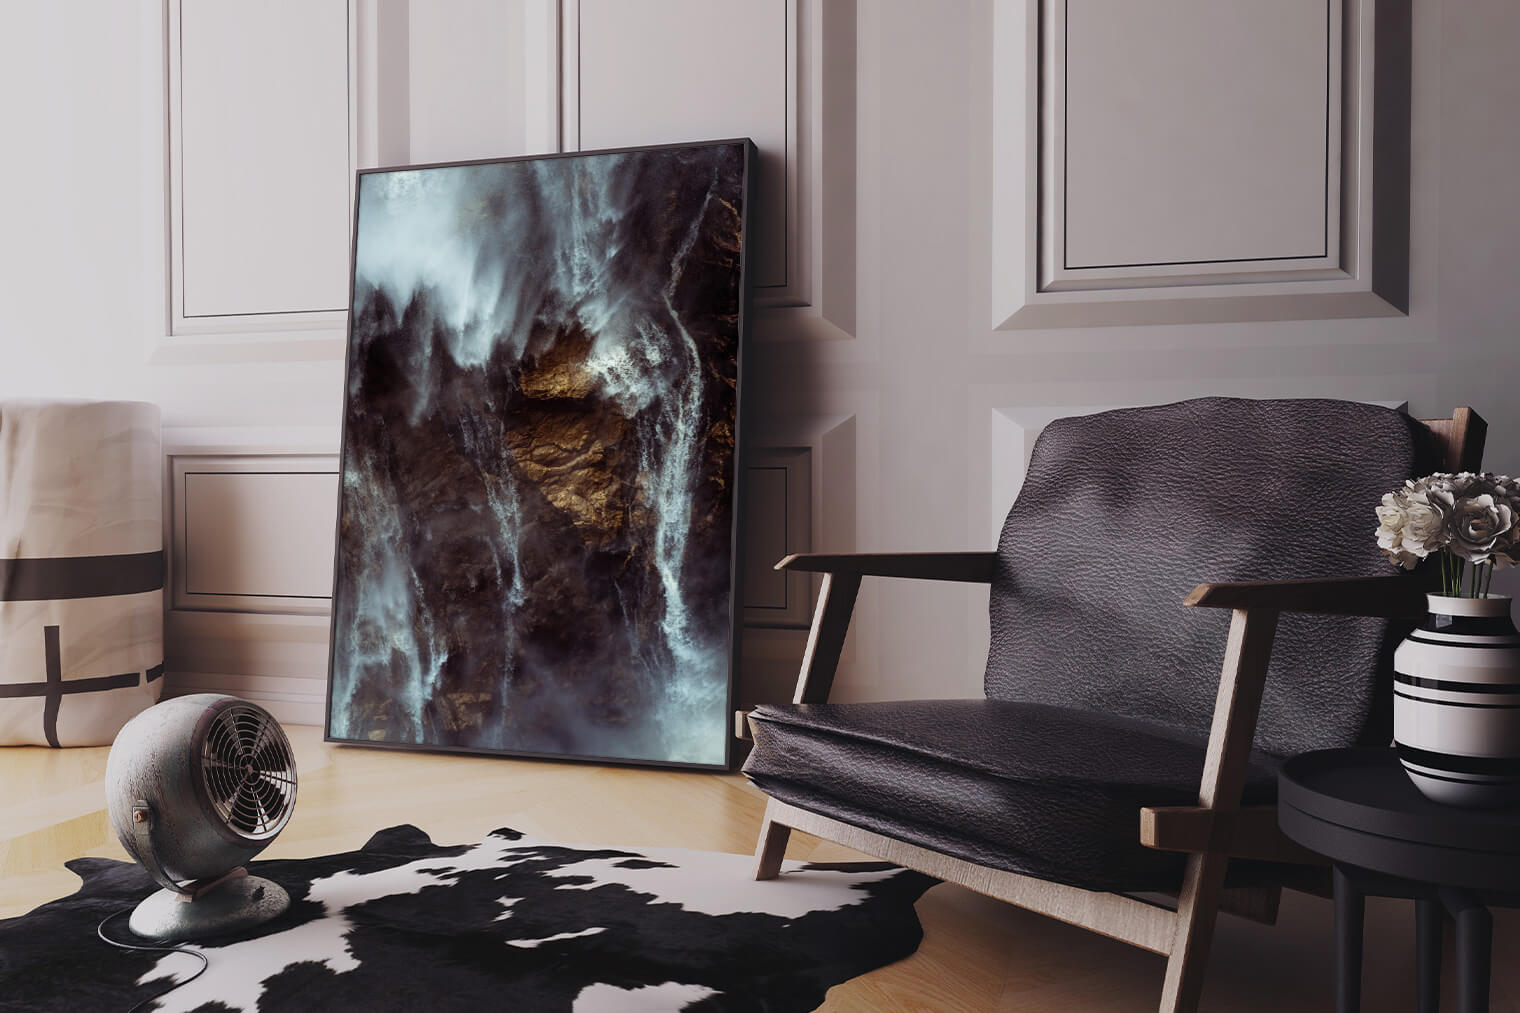 Abstract Photography for Interior Design